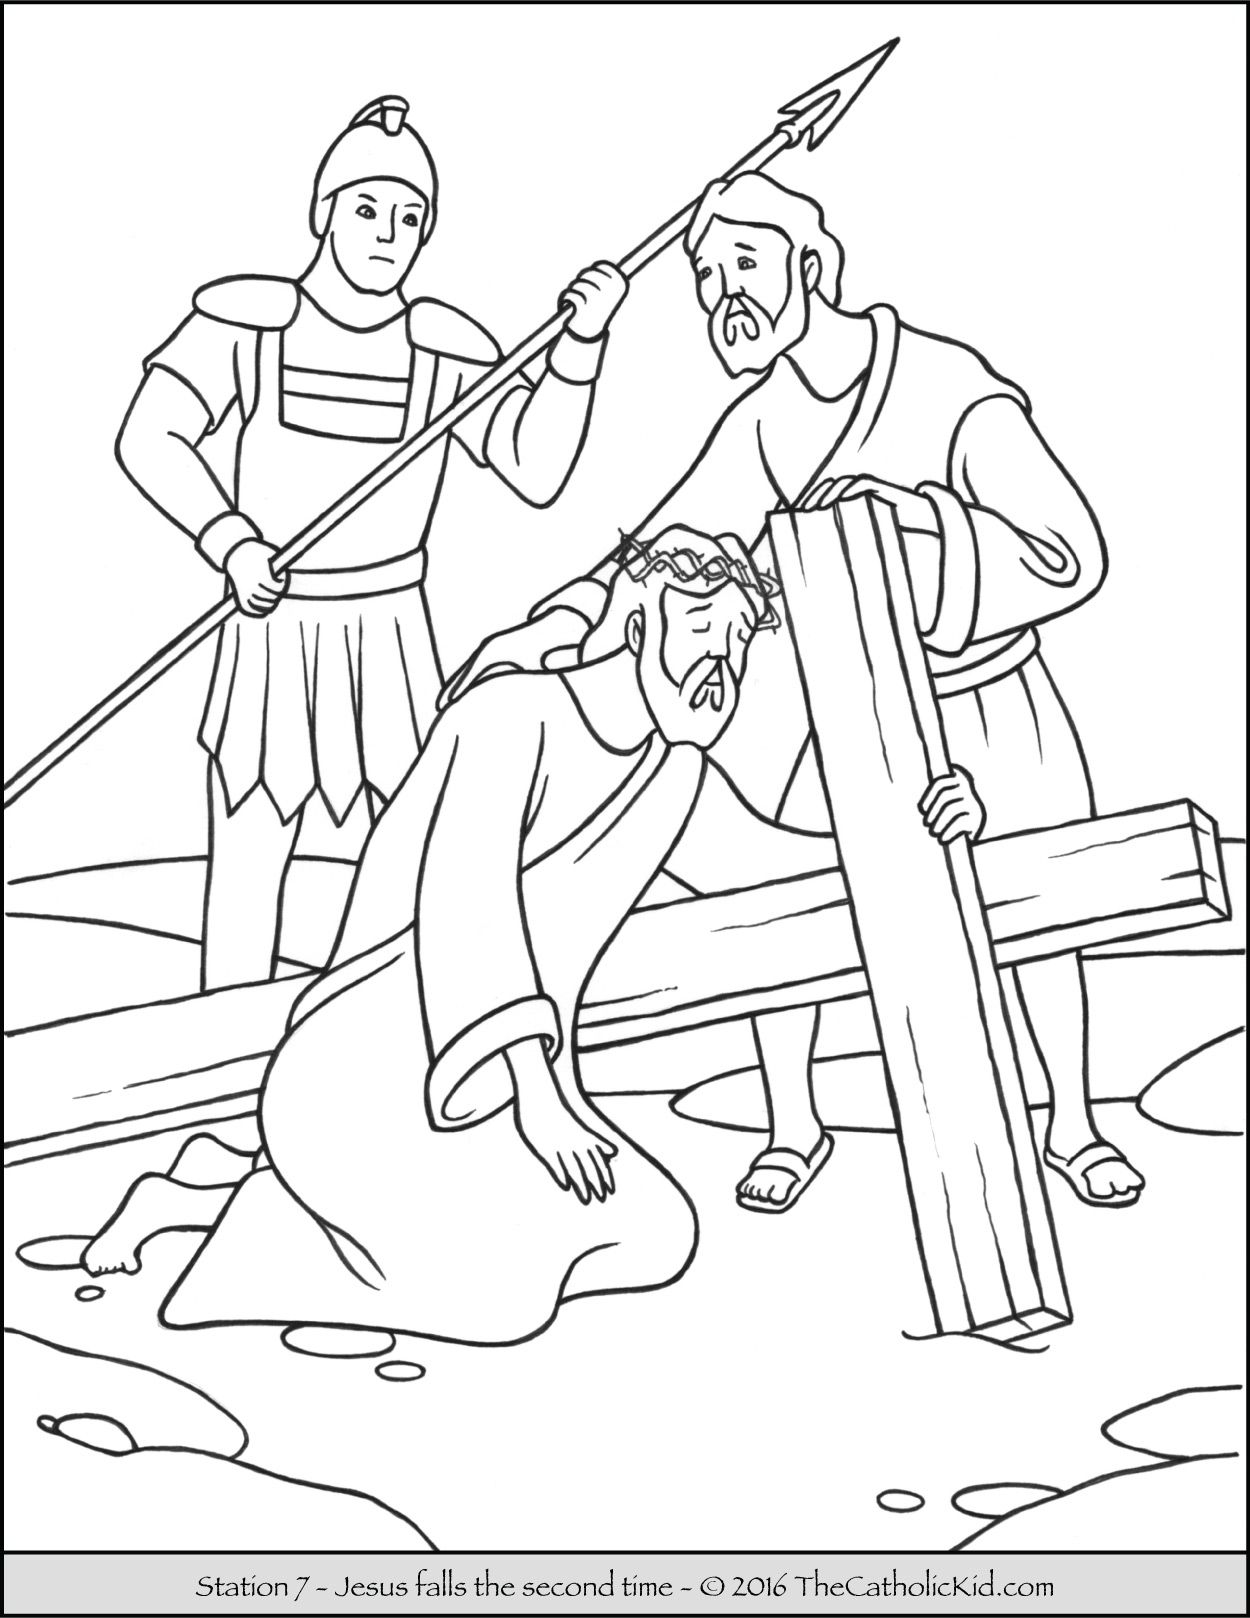 Coloring pages jesus on the cross - Stations Of The Cross Coloring Pages 7 Jesus Falls The Second Time